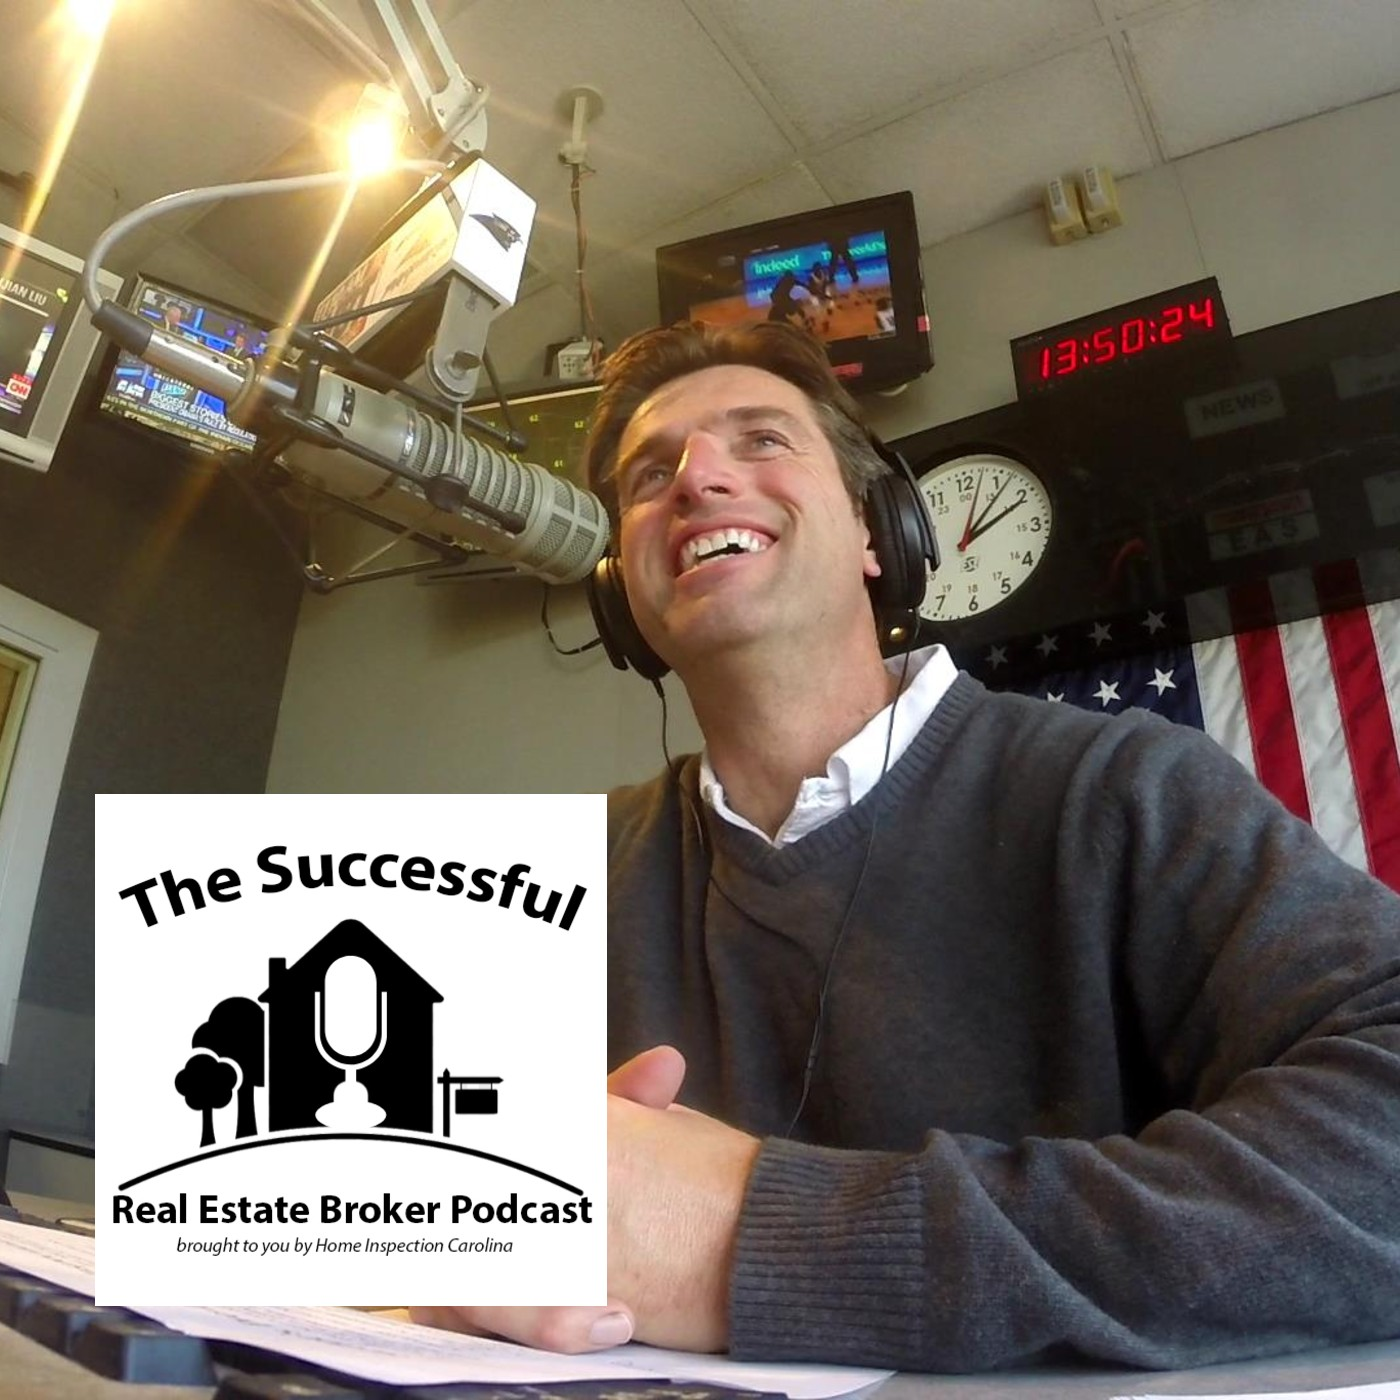 The Successful Real Estate Broker Podcast